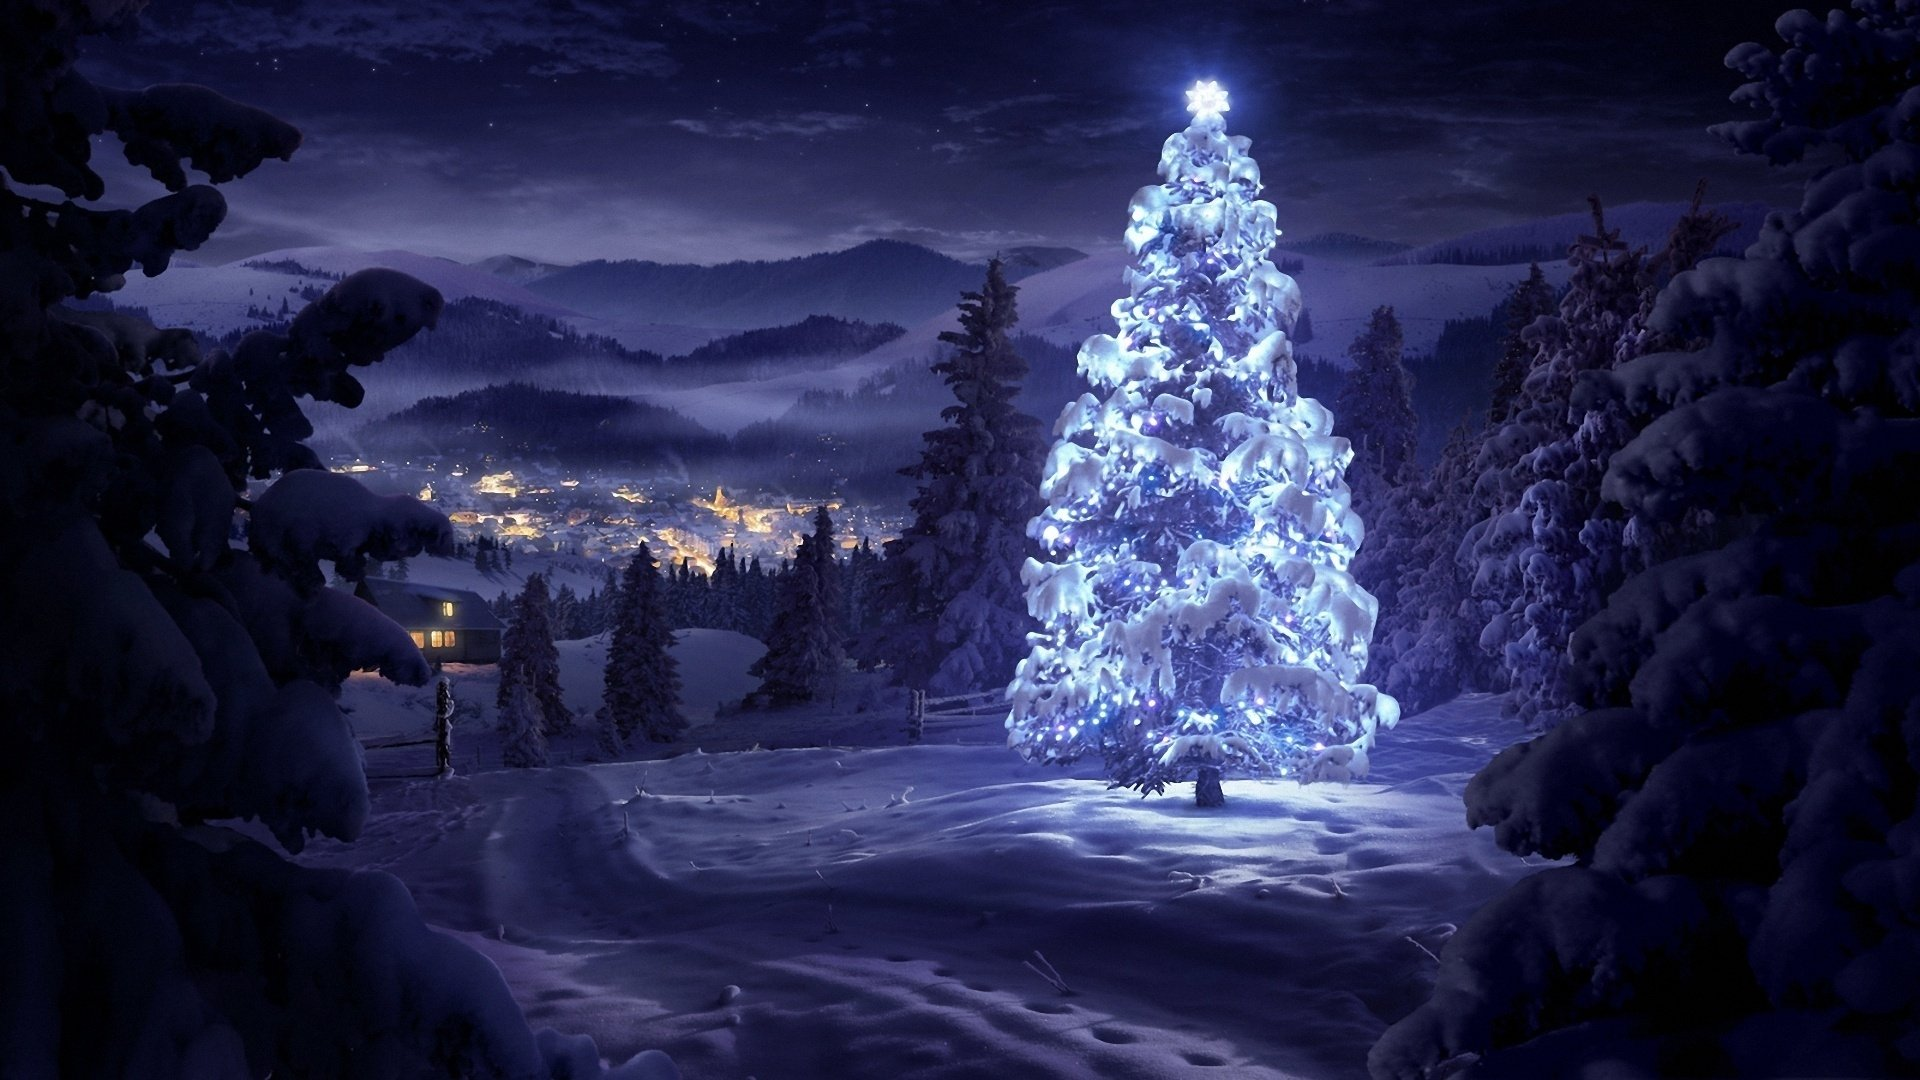 Feiertage - Weihnachten  Dorf Winter Landschaft Christmas Tree Snow Lila Wallpaper